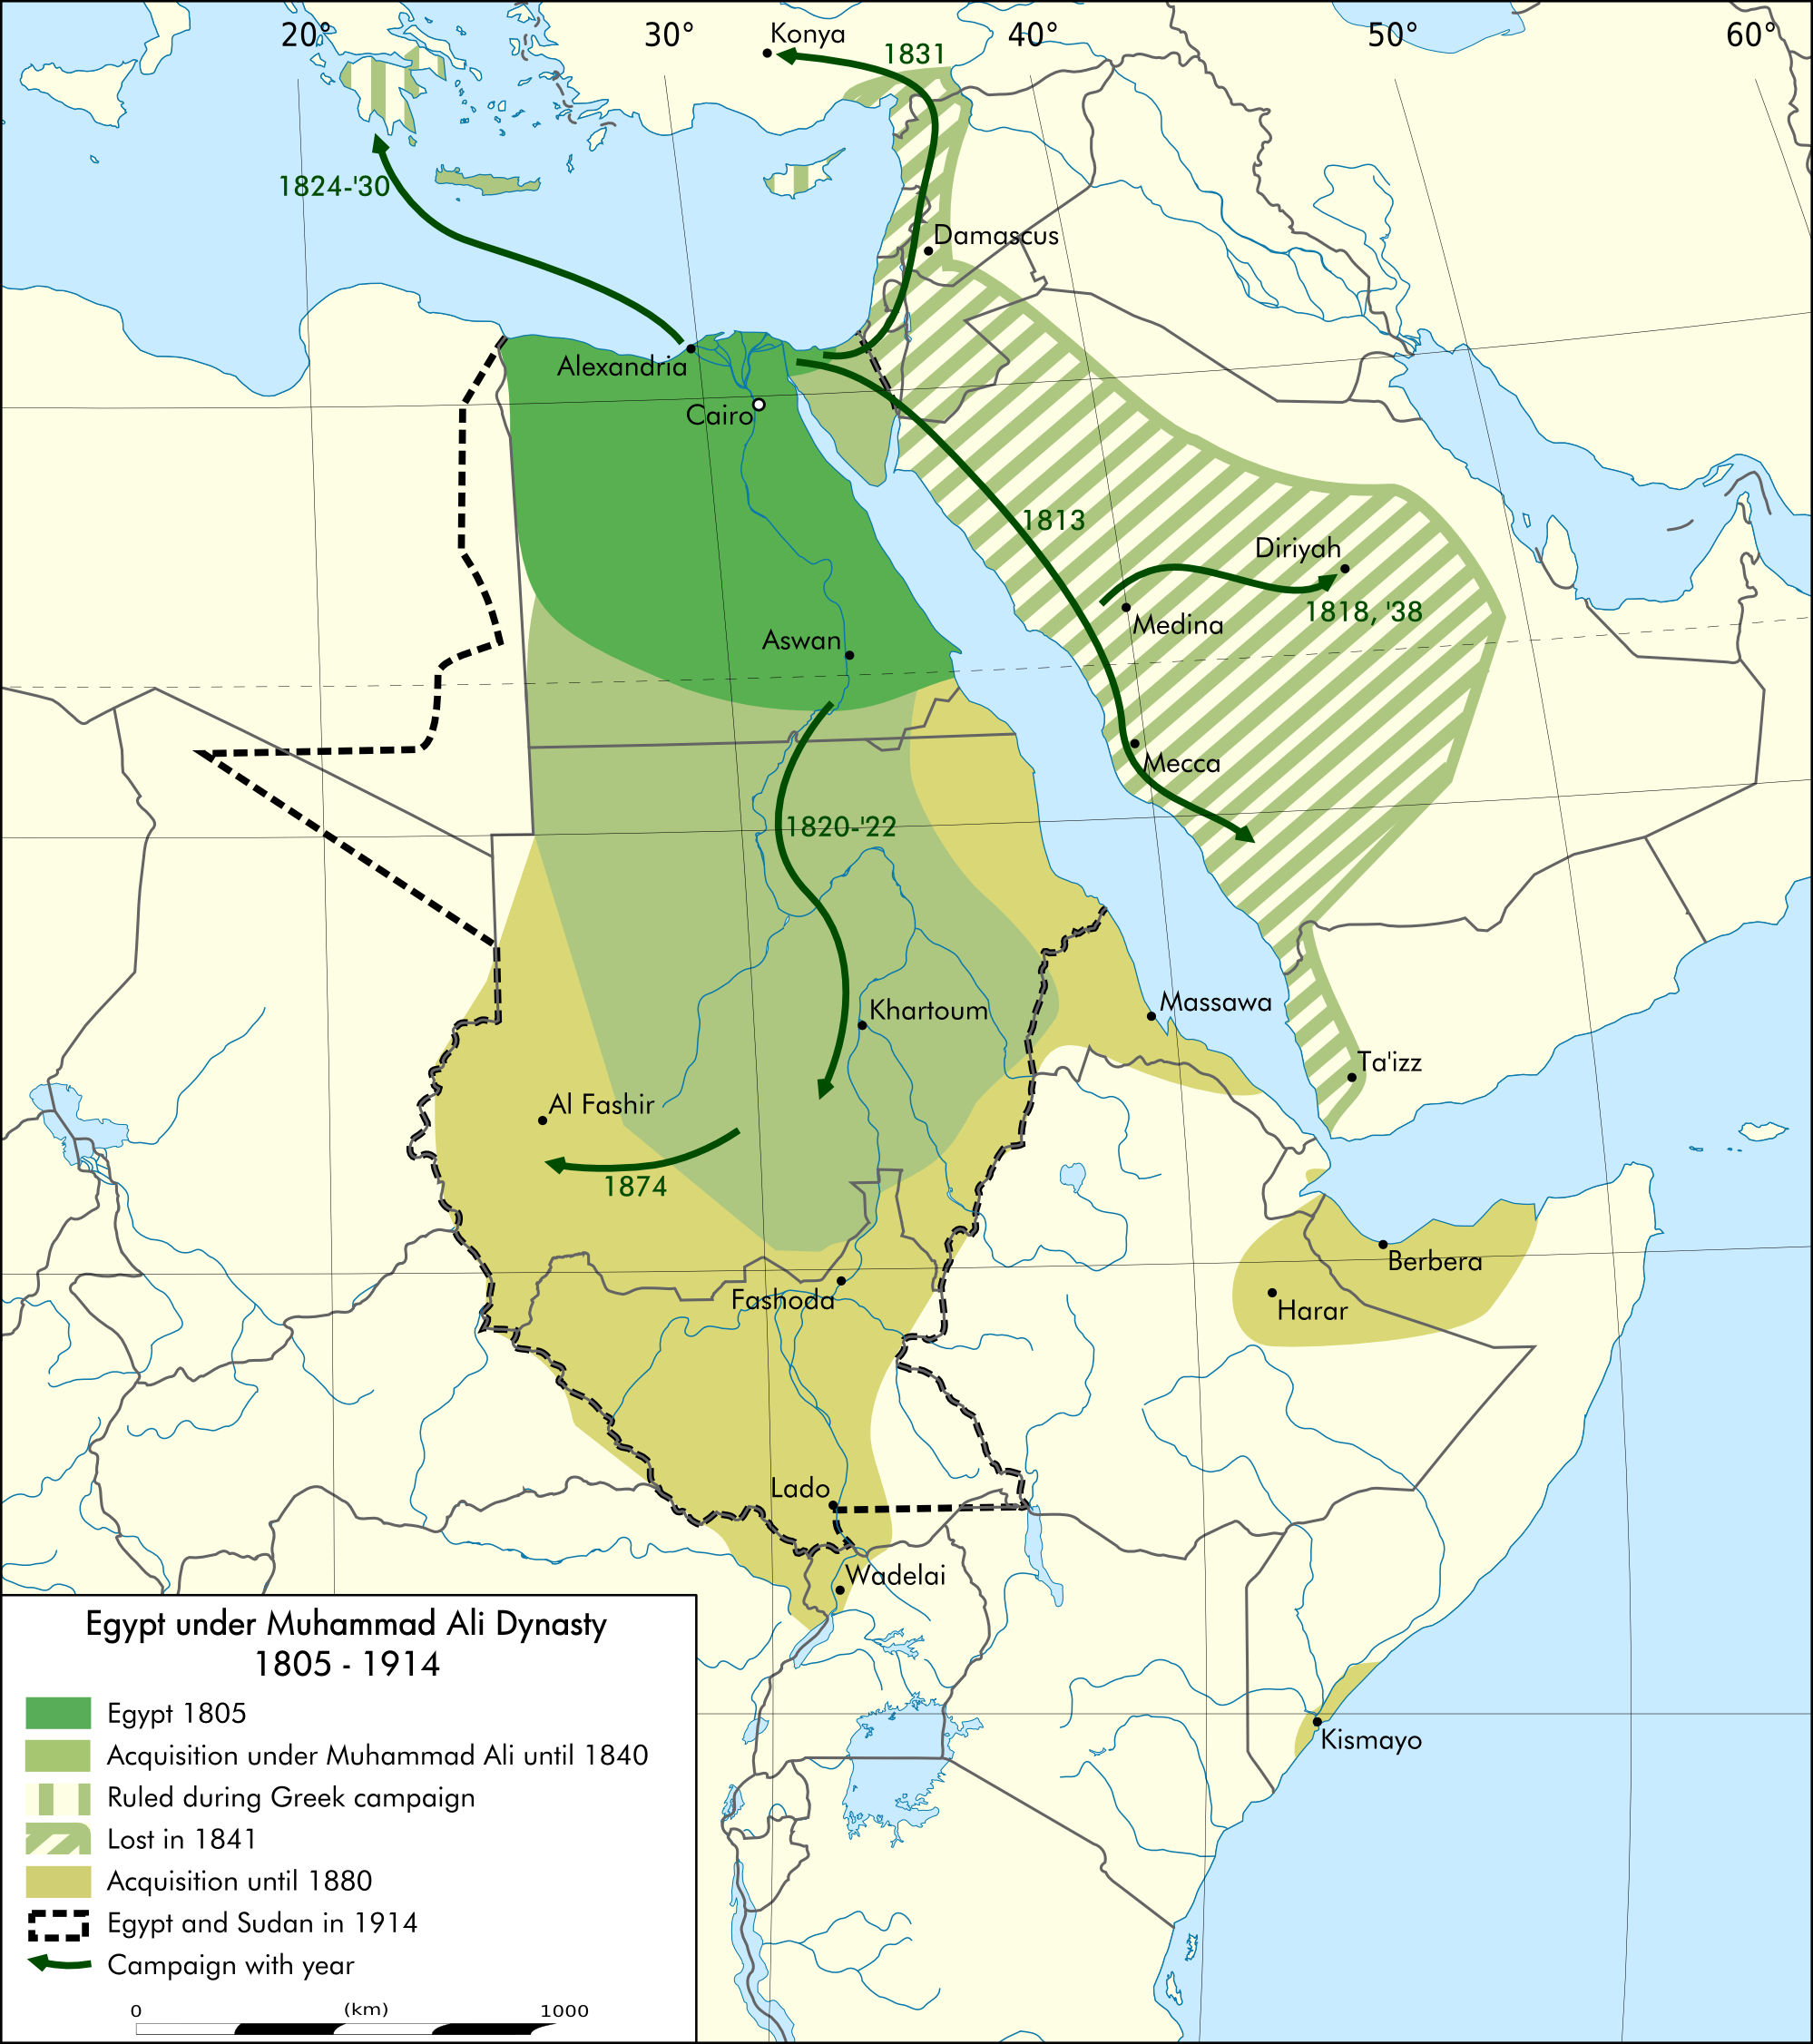 FileEgypt Under Muhammad Ali Dynasty Map Enpng Wikimedia Commons - Map of egypt history